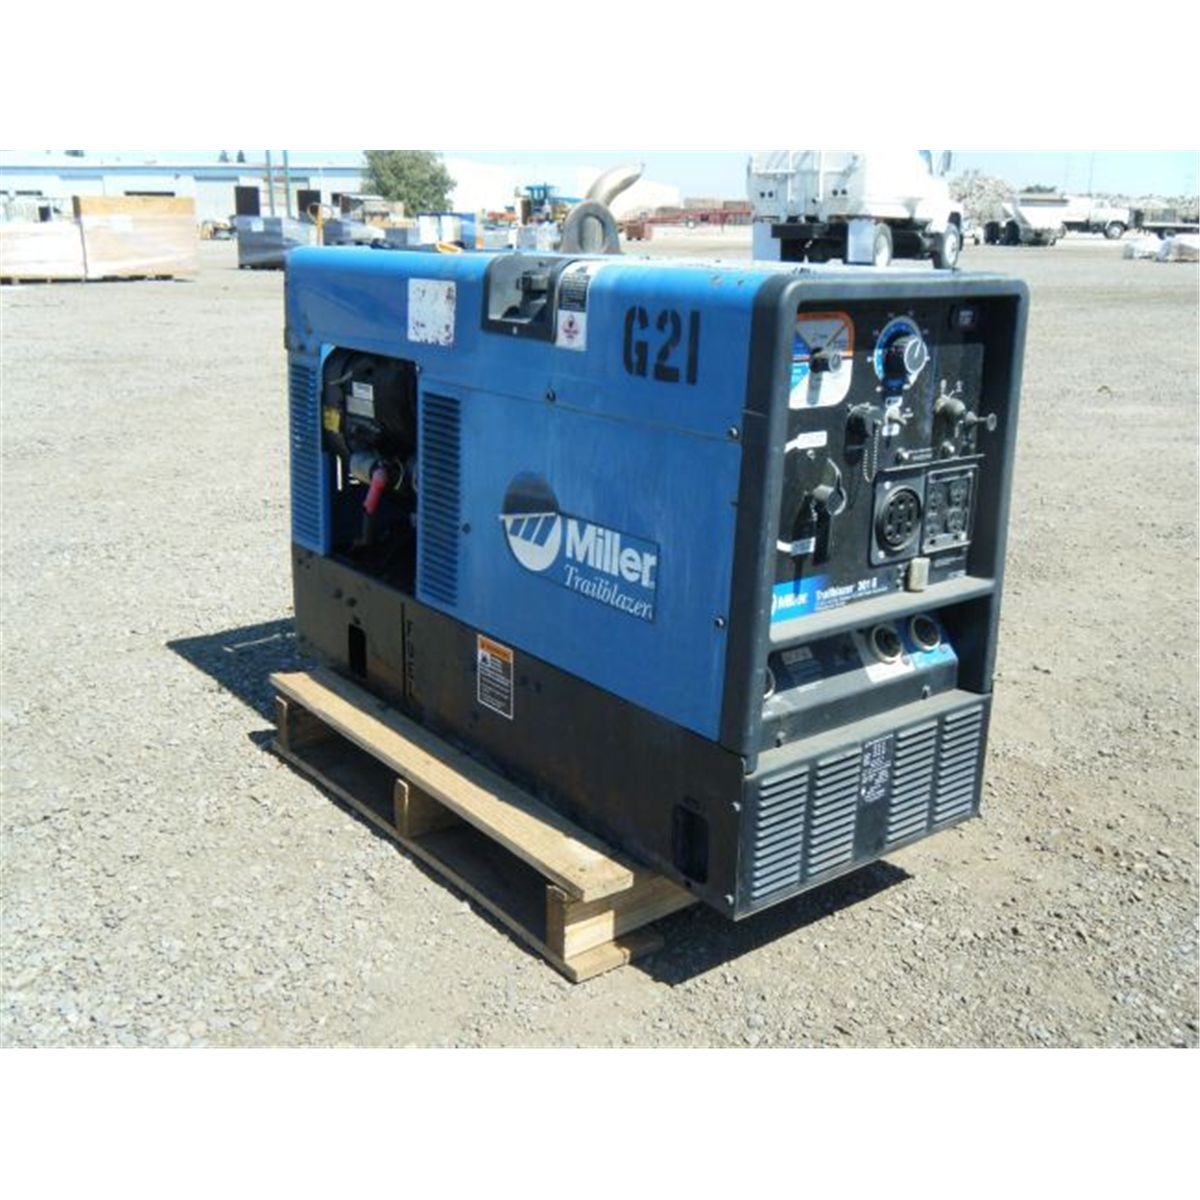 trailblazer 302 Miller trailblazer 302 engine drives offer unbeatable arc performance, independent generator and weld outputs make this ideal for contruction, fabrication, and.